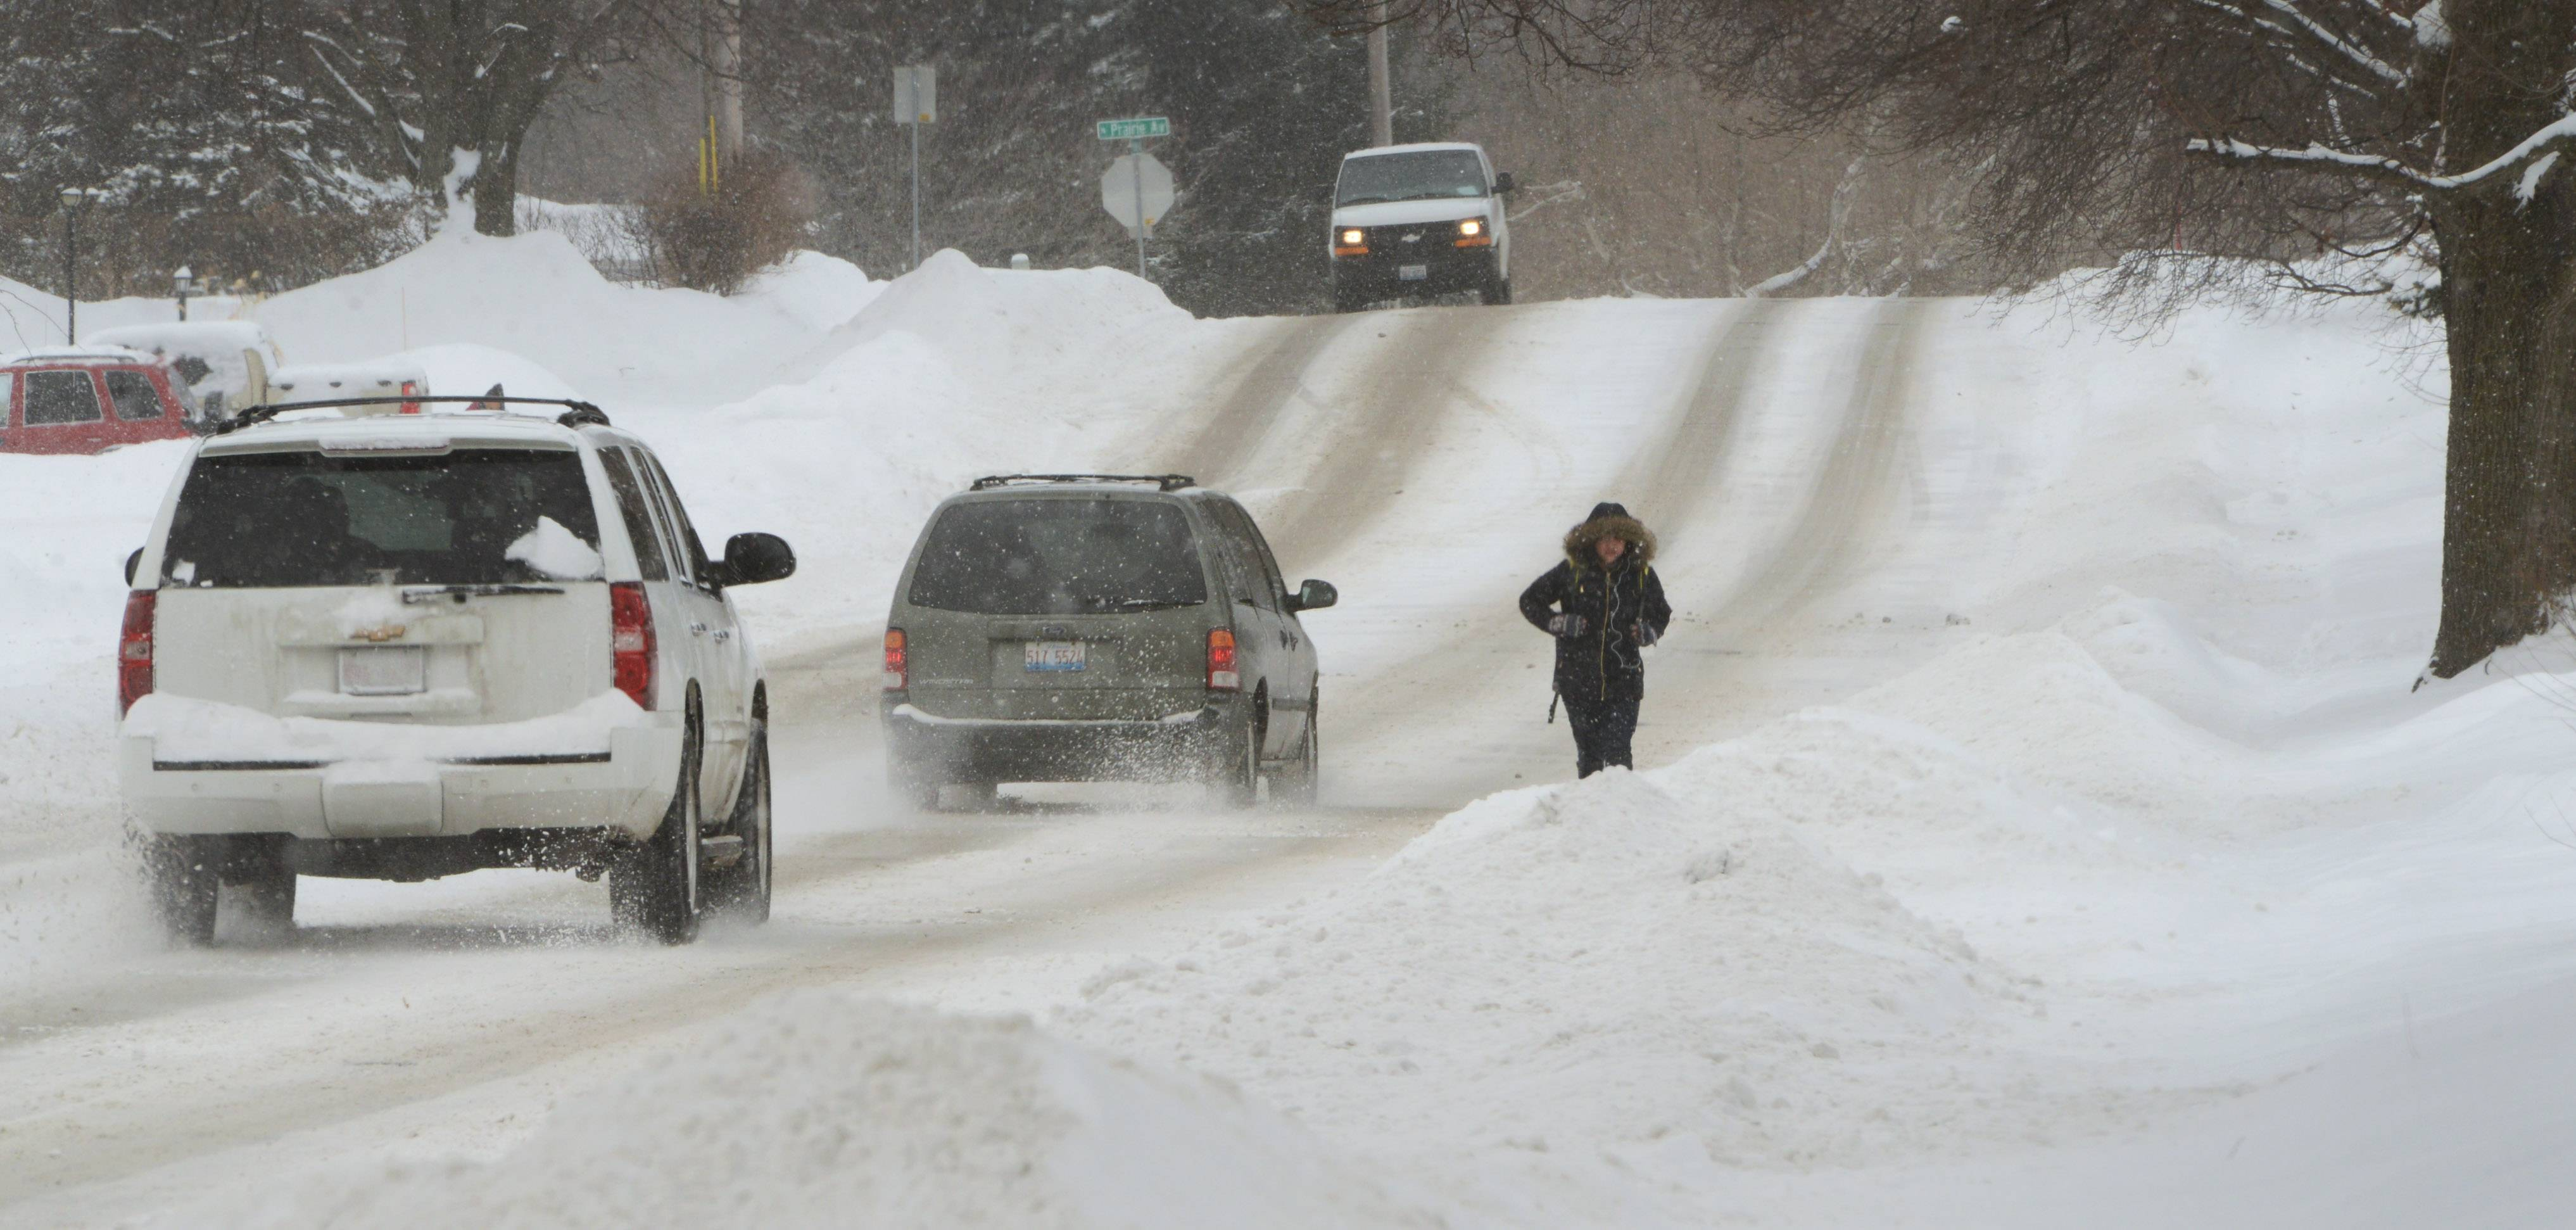 A pedestrian finds it easier to walk on the road than the sidewalk along Hawley Street, just west of Route 45 in Mundelein, after a recent storm.